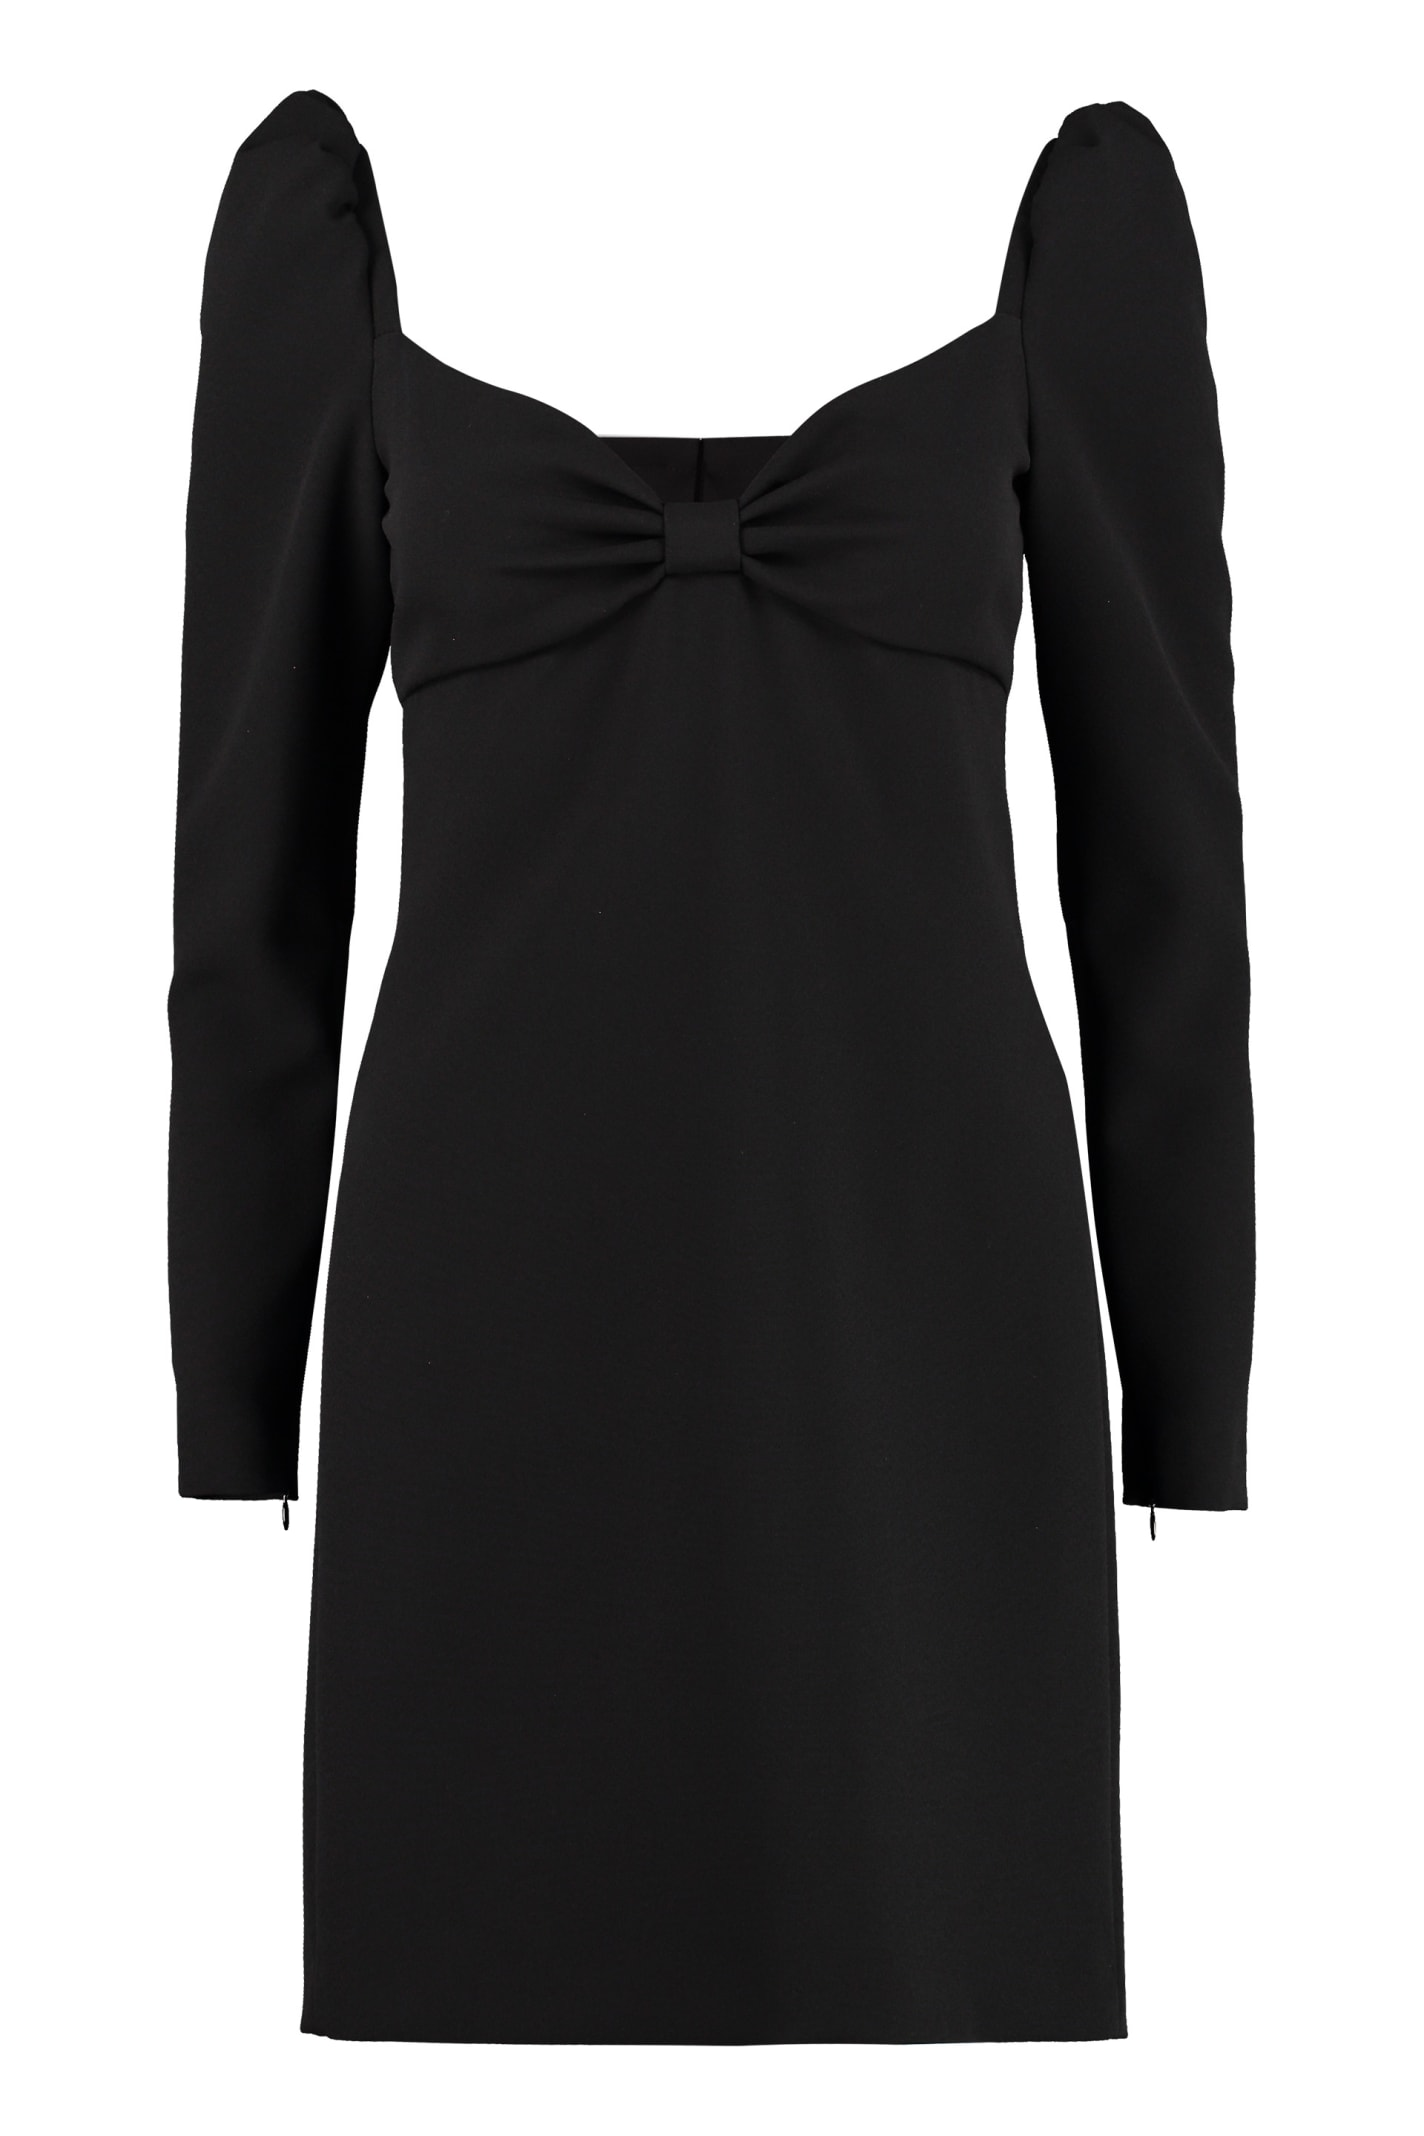 Buy RED Valentino Bow Detail Mini Dress online, shop RED Valentino with free shipping